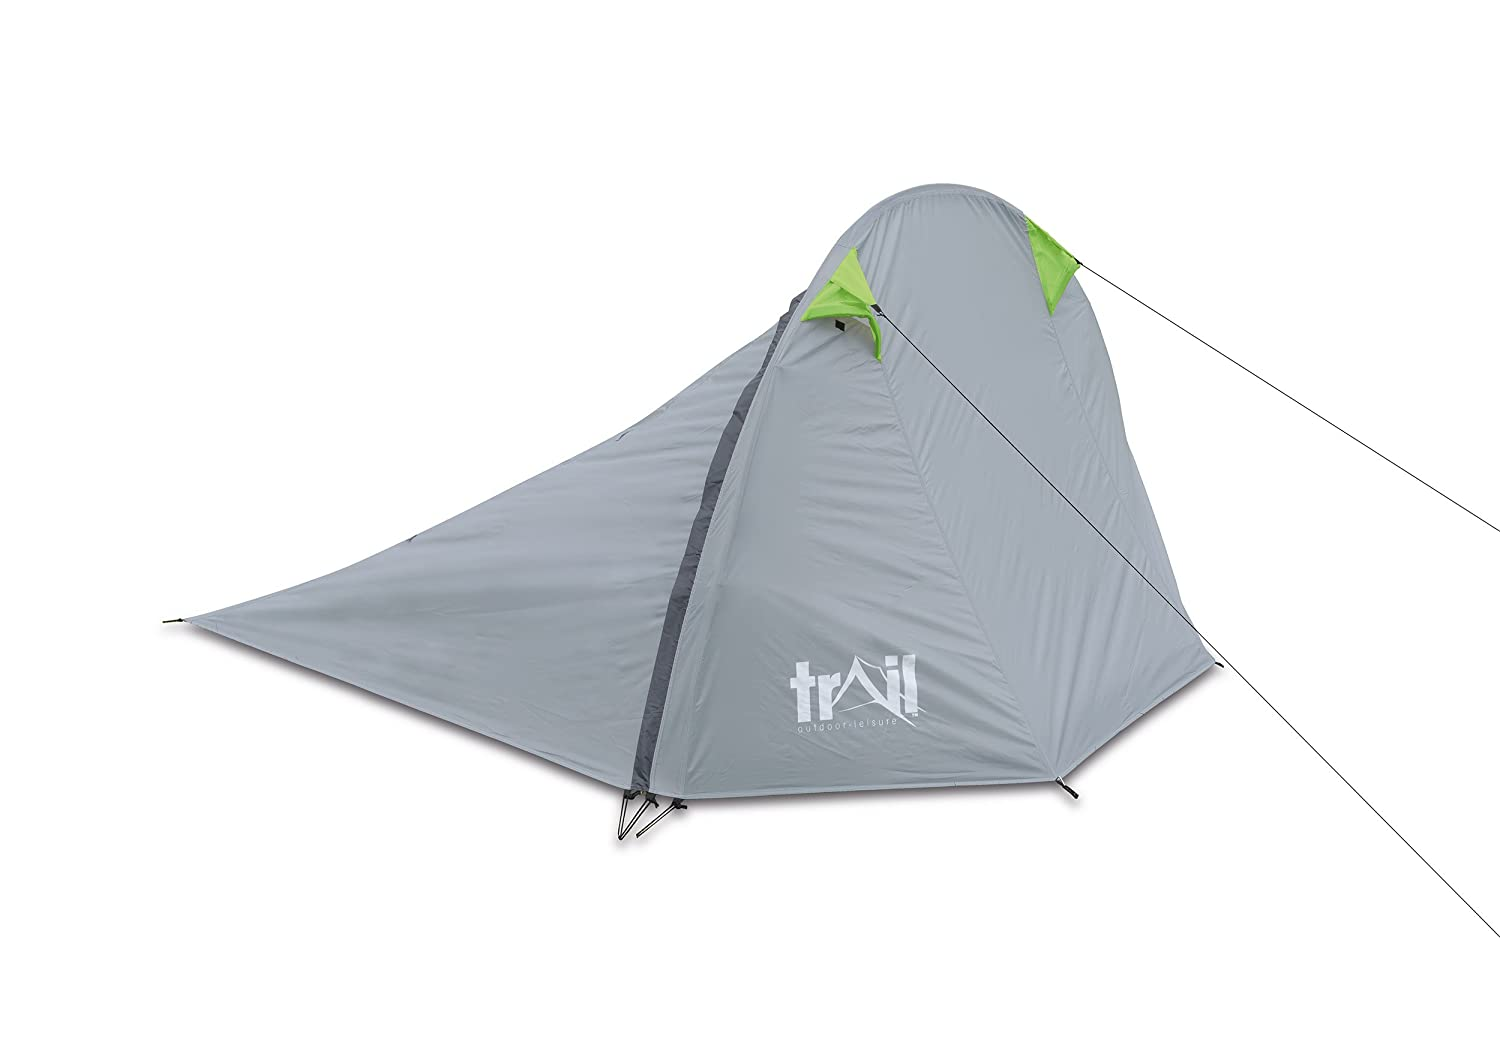 Trail Fly Waterproof C&ing Tent - Grey 260 x 210 x 145 cm Amazon.co.uk Sports u0026 Outdoors  sc 1 st  Amazon UK & Trail Fly Waterproof Camping Tent - Grey 260 x 210 x 145 cm ...